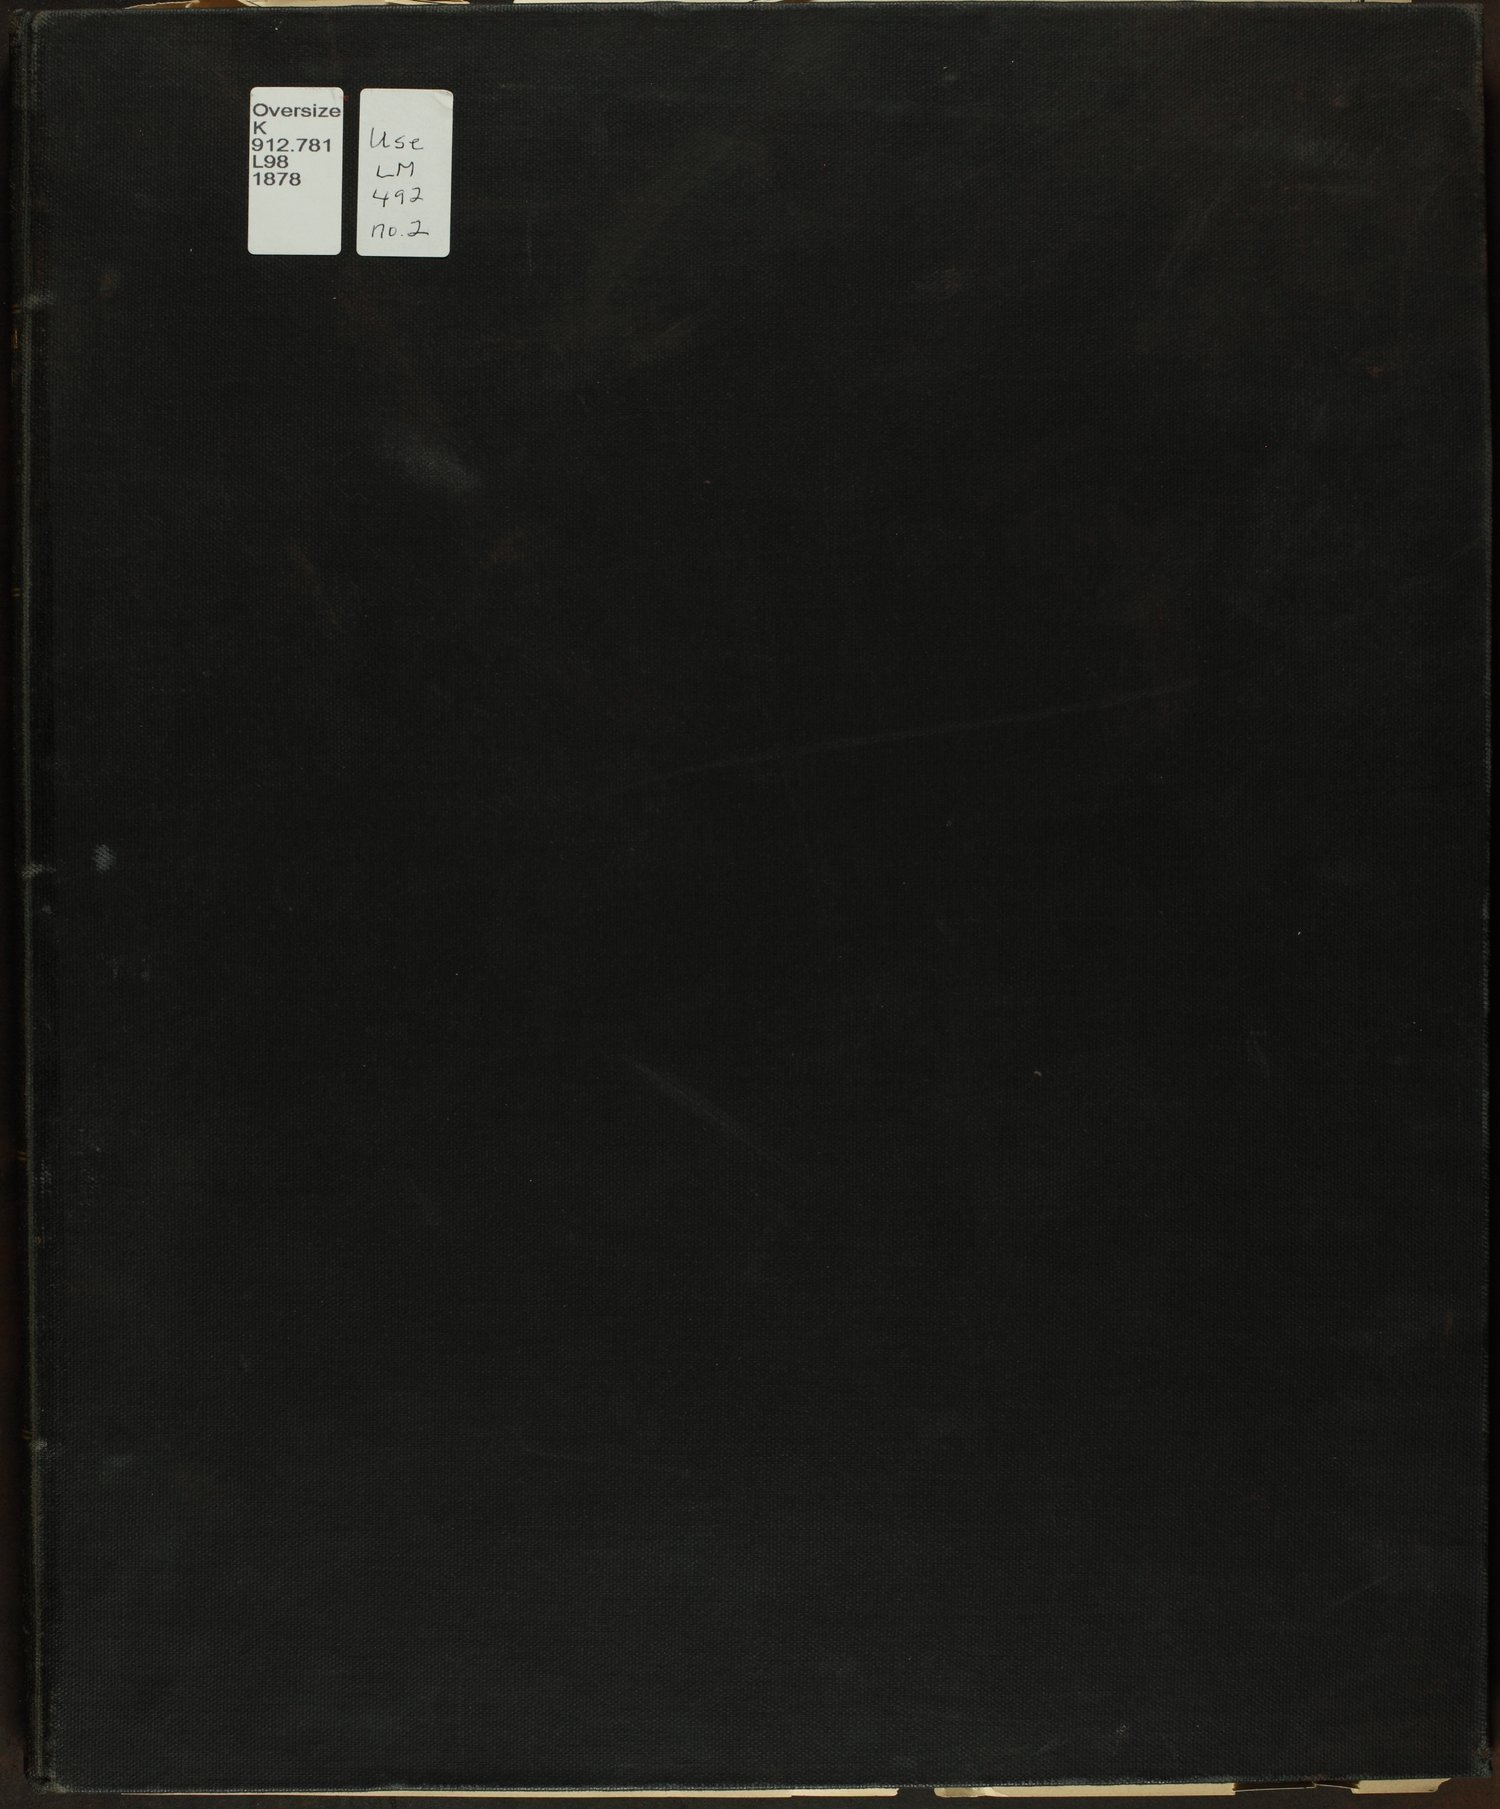 An illustrated historical atlas of Lyon county, Kansas - Front Cover